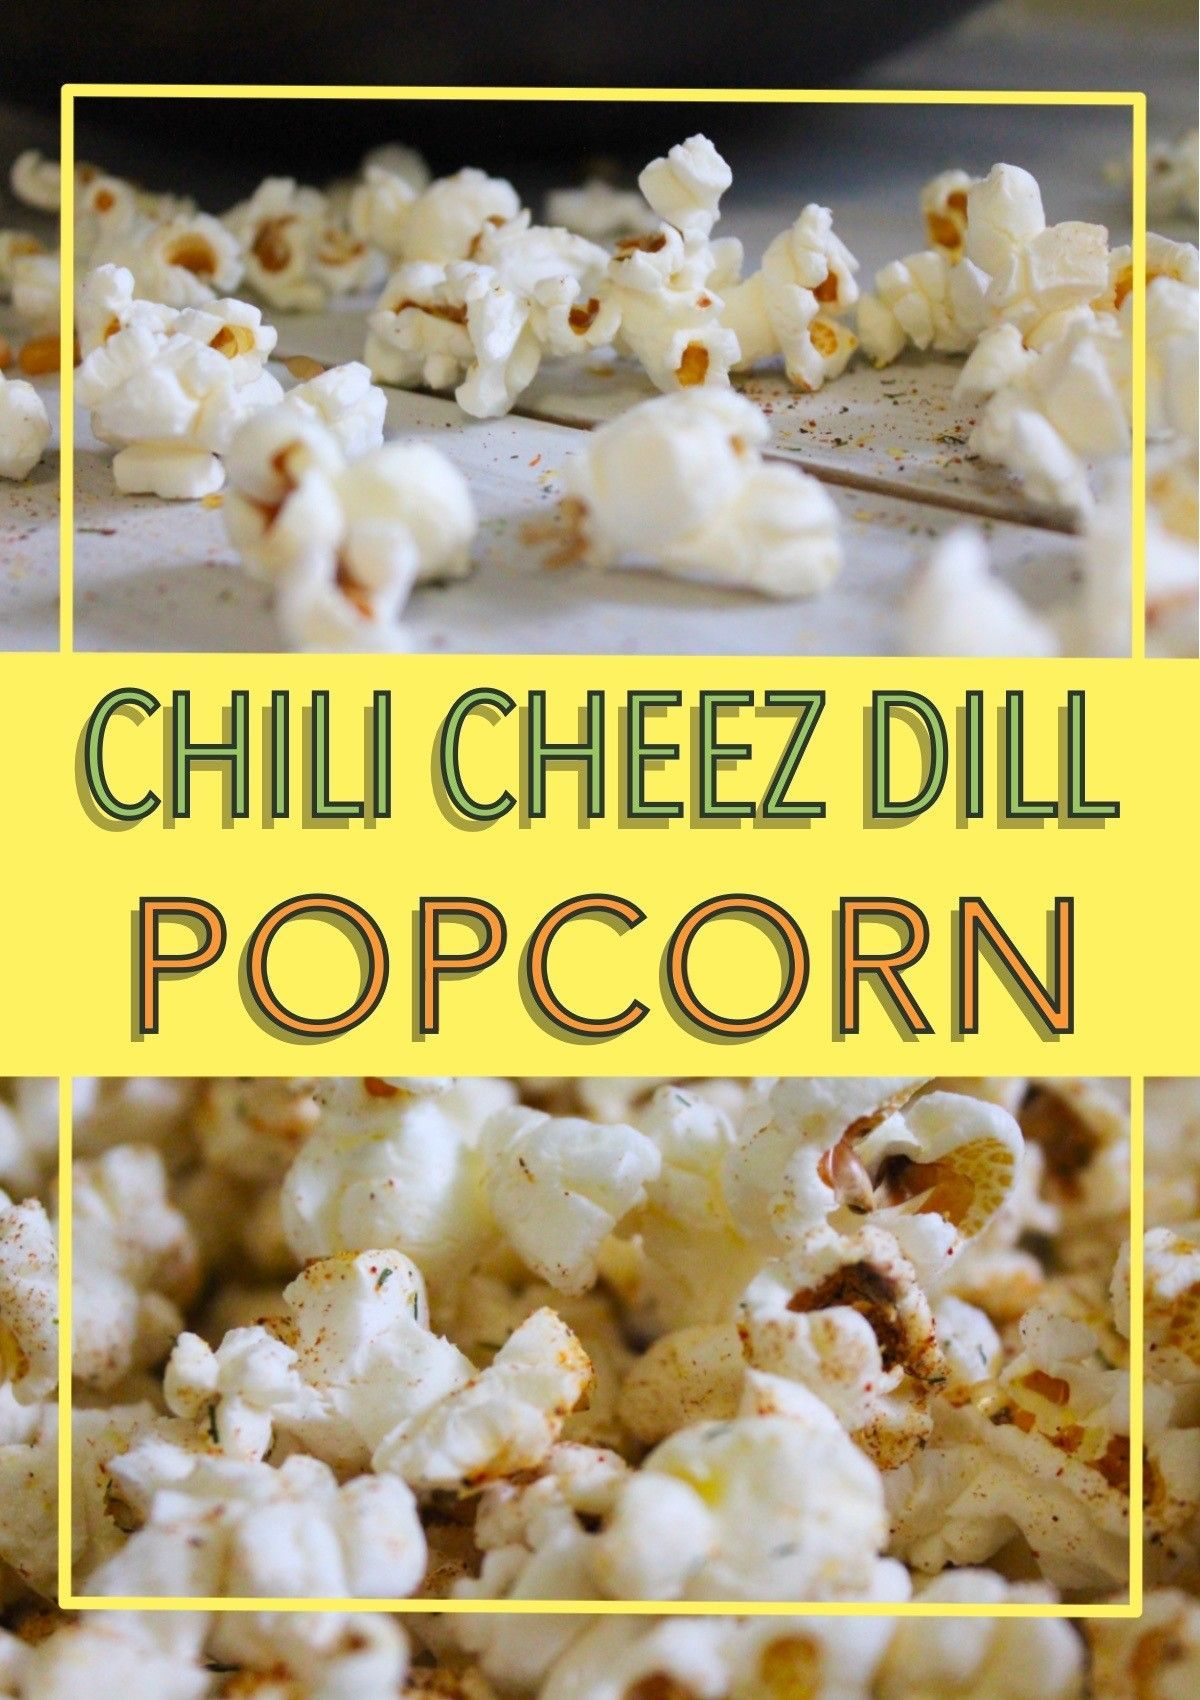 Chili dilly popcorn seasoning recipe with images